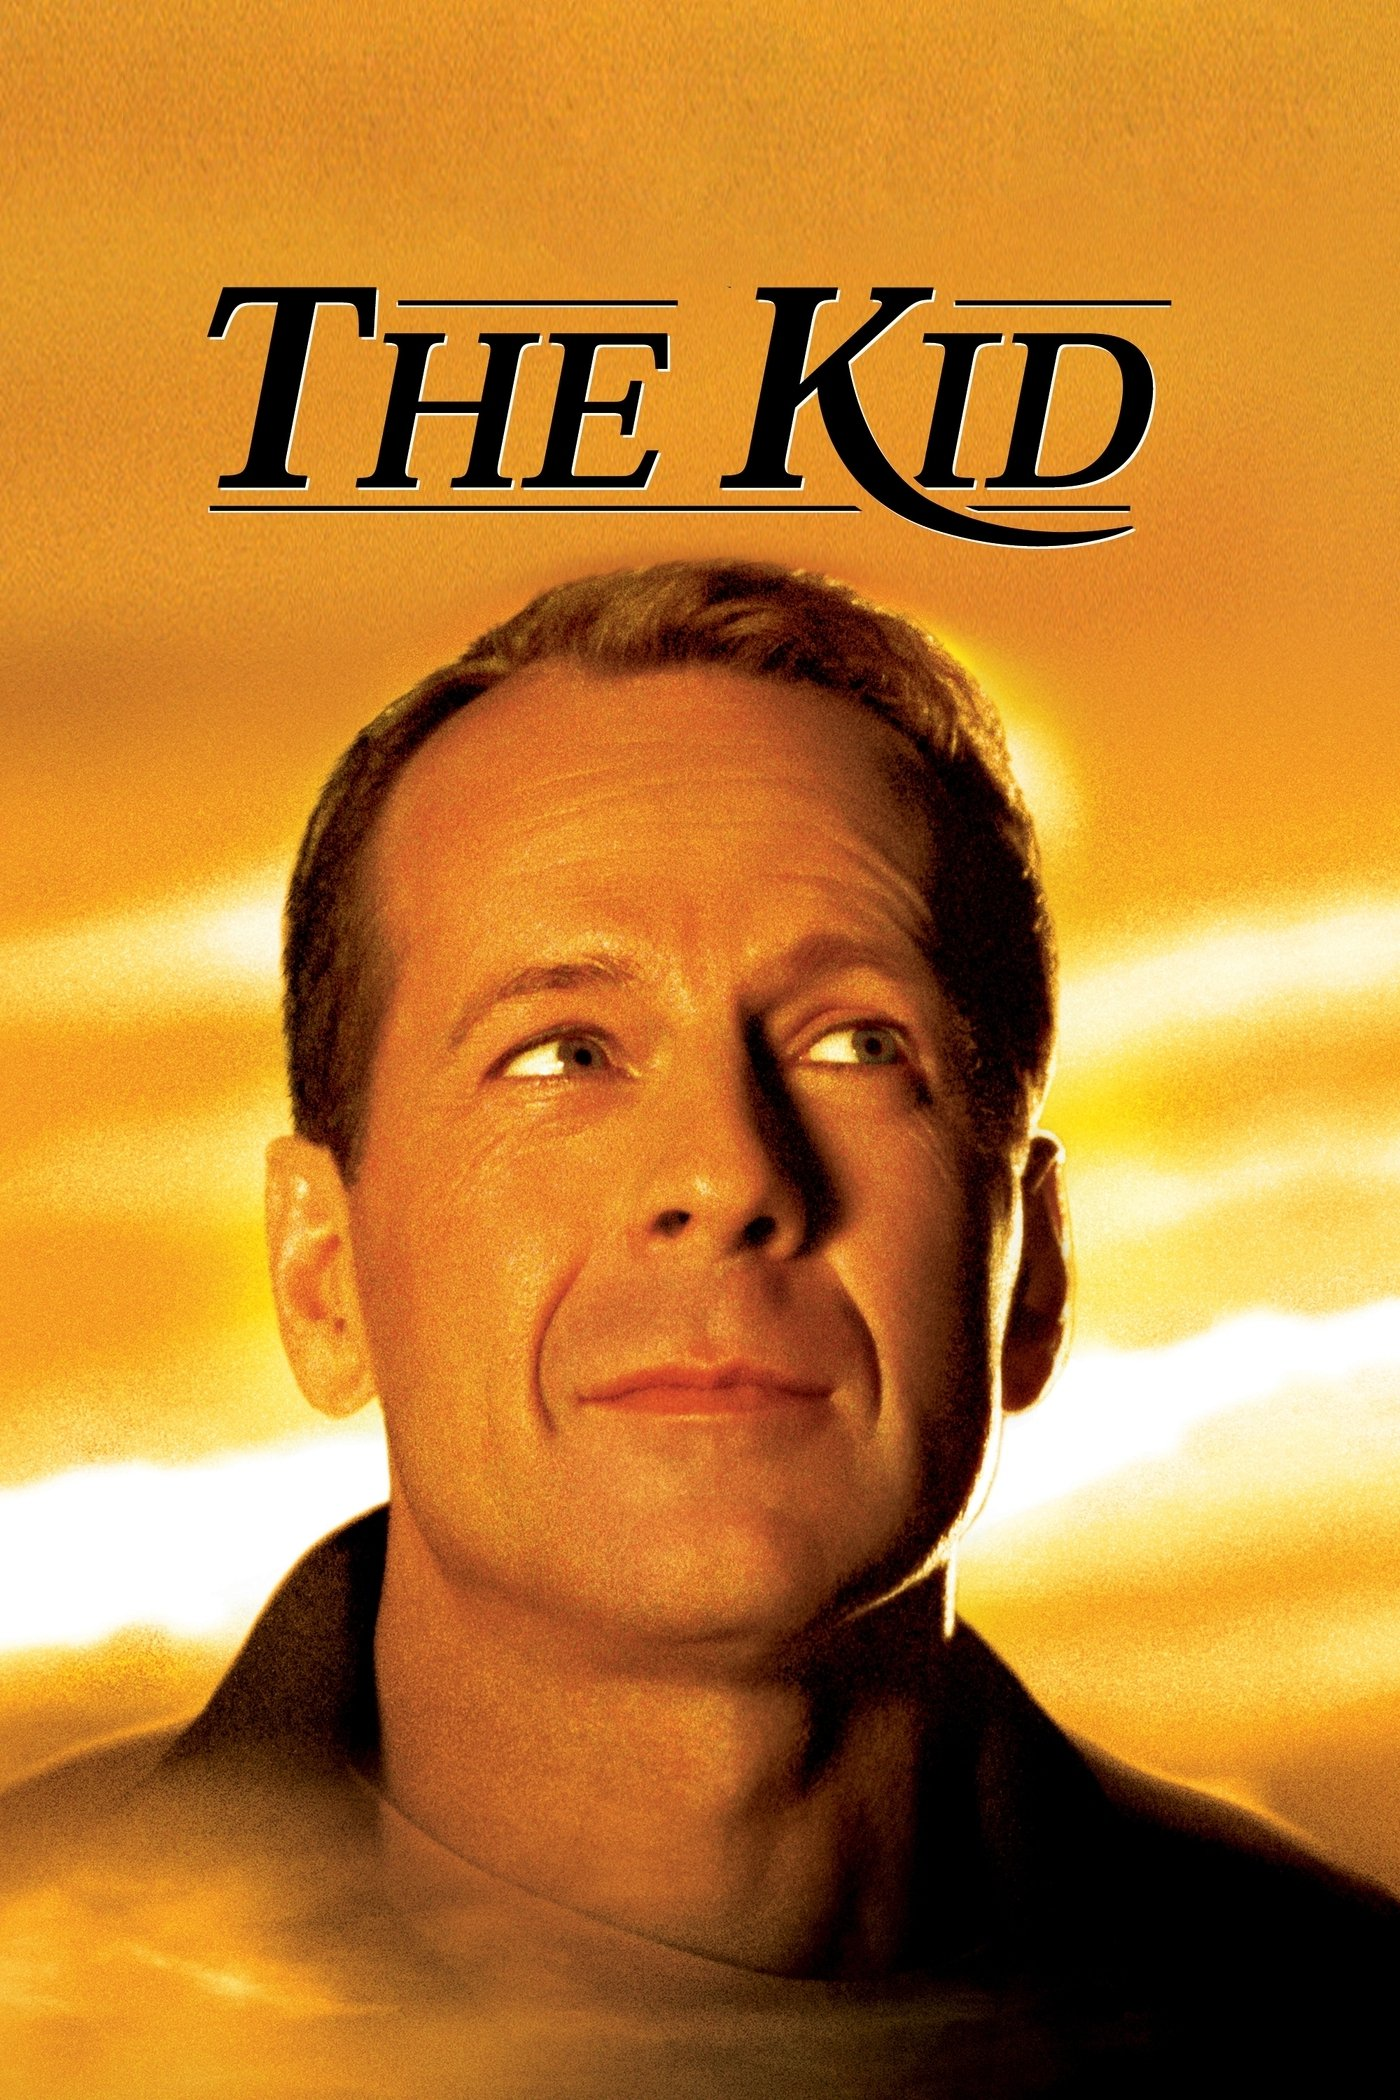 the kid – image ist alles